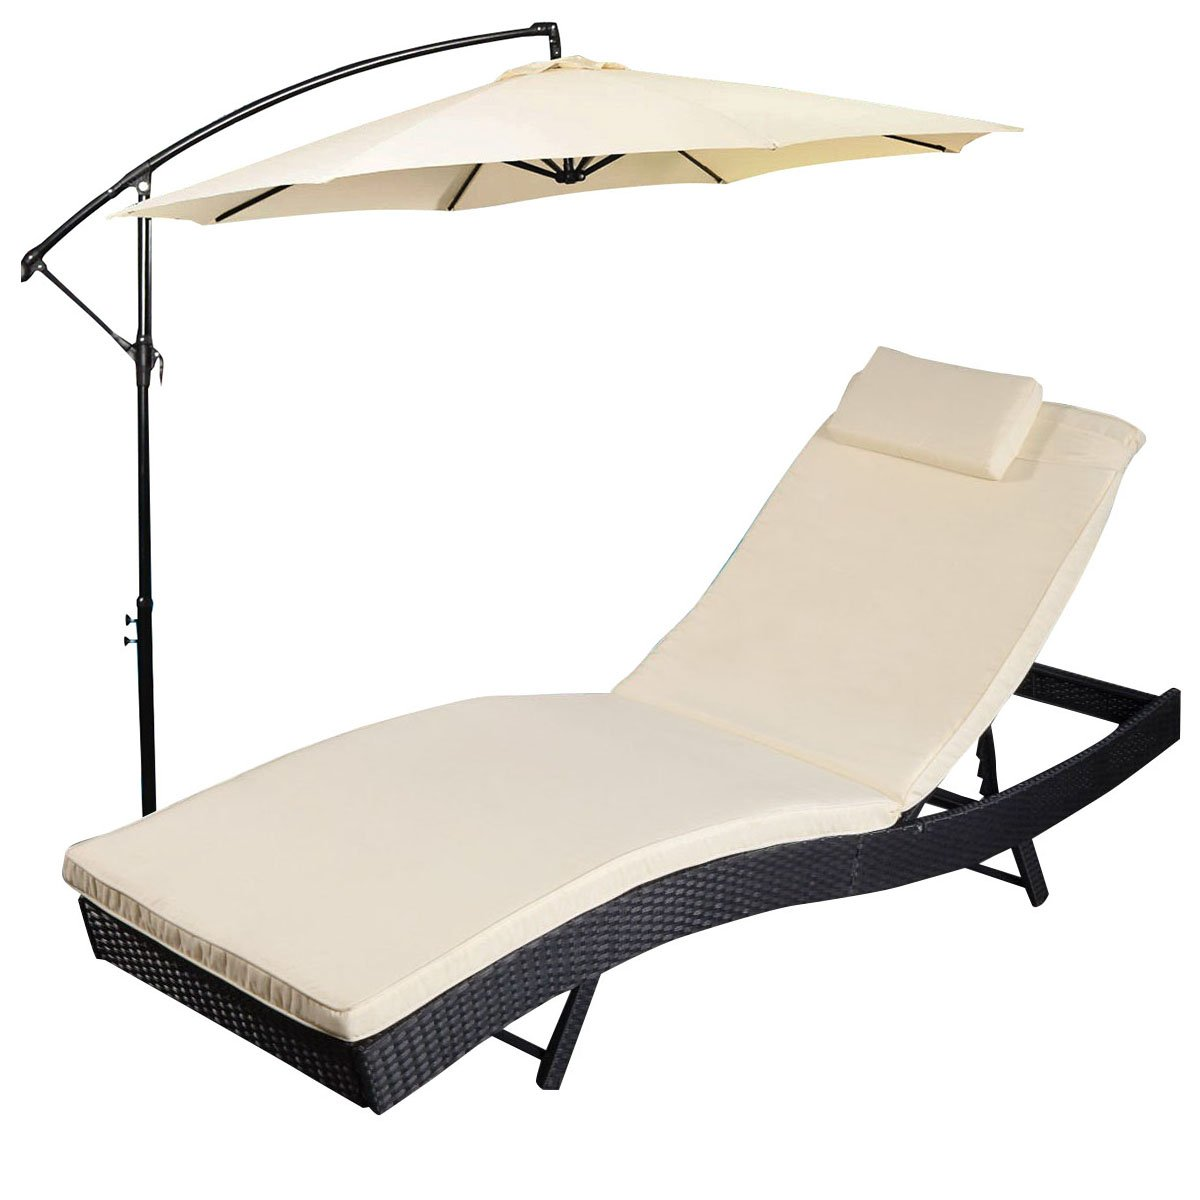 Amazon com tangkula adjustable pool chaise lounge chair outdoor patio furniture pe wicker w cushion with umbrella garden outdoor